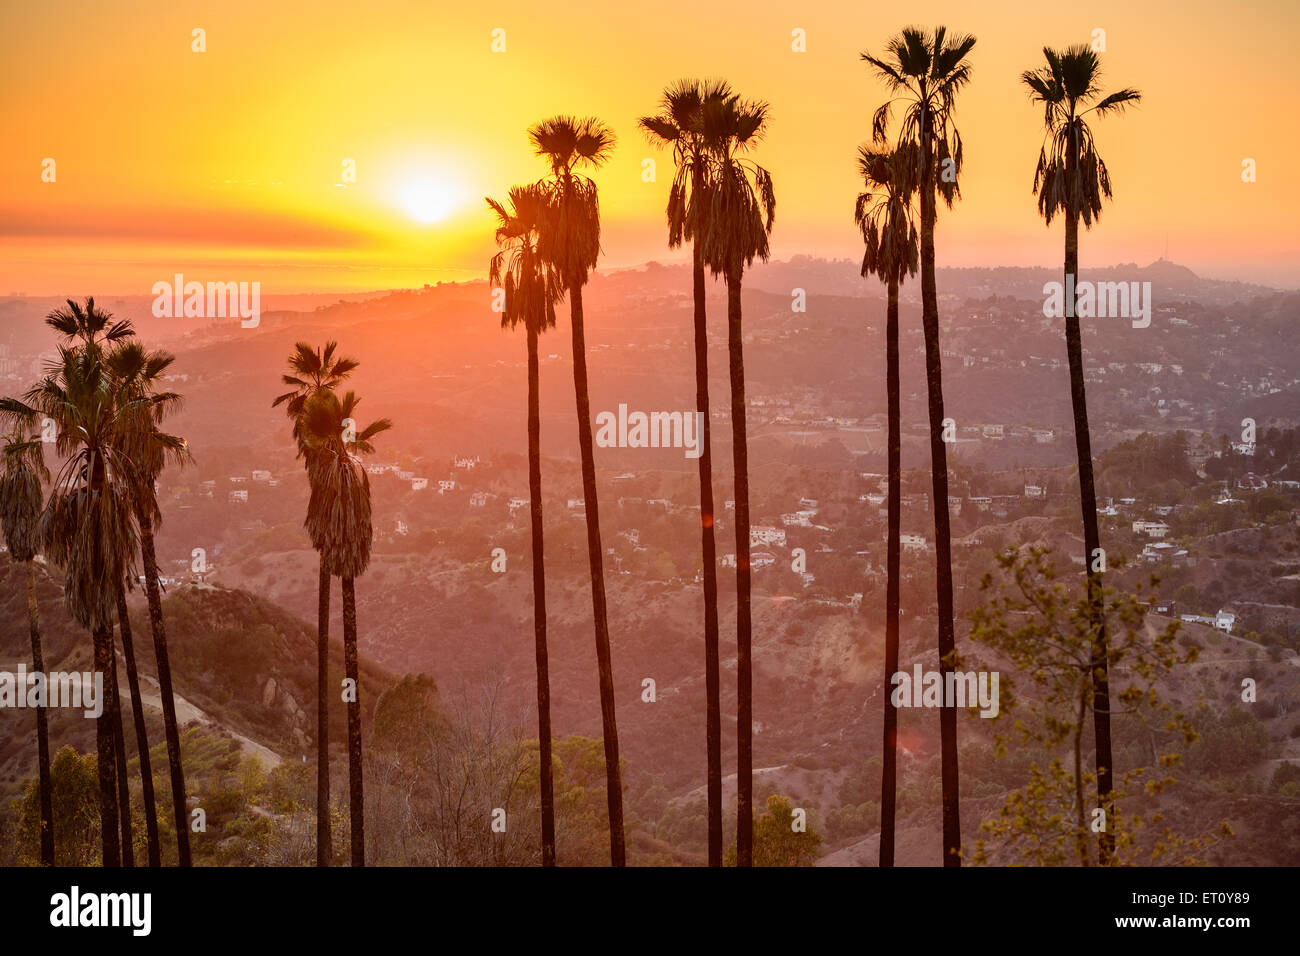 Griffith Park, Los Angeles, California, Estados Unidos. Imagen De Stock